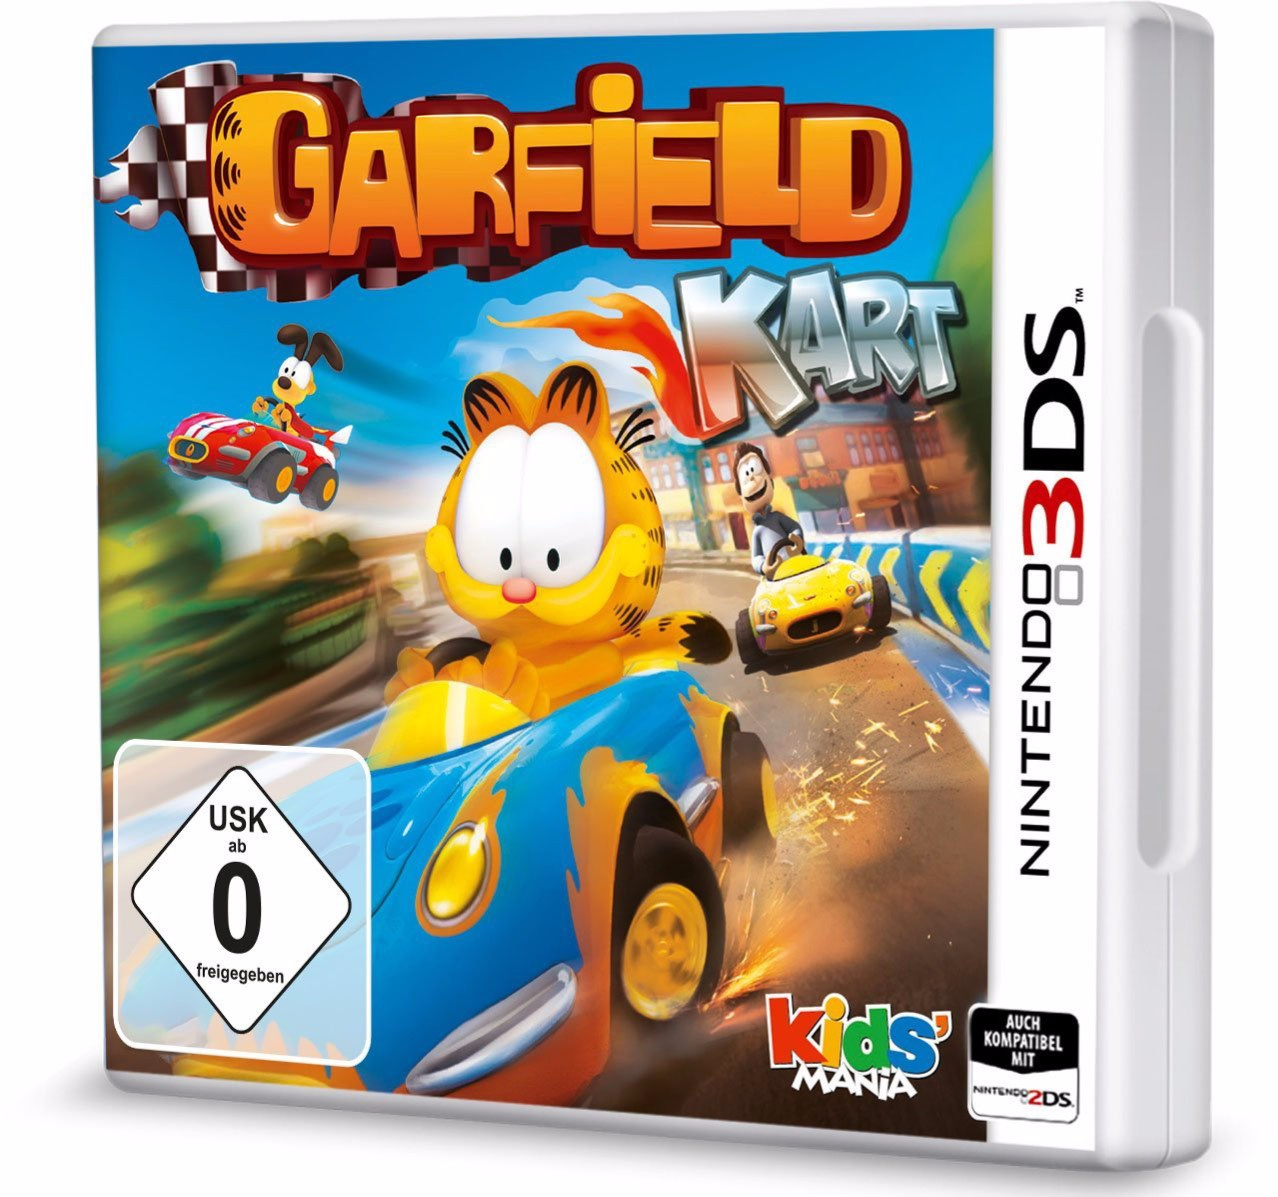 Garfield And Paddington Bear To Star In Upcoming 3ds Blockbusters Nintendo Life